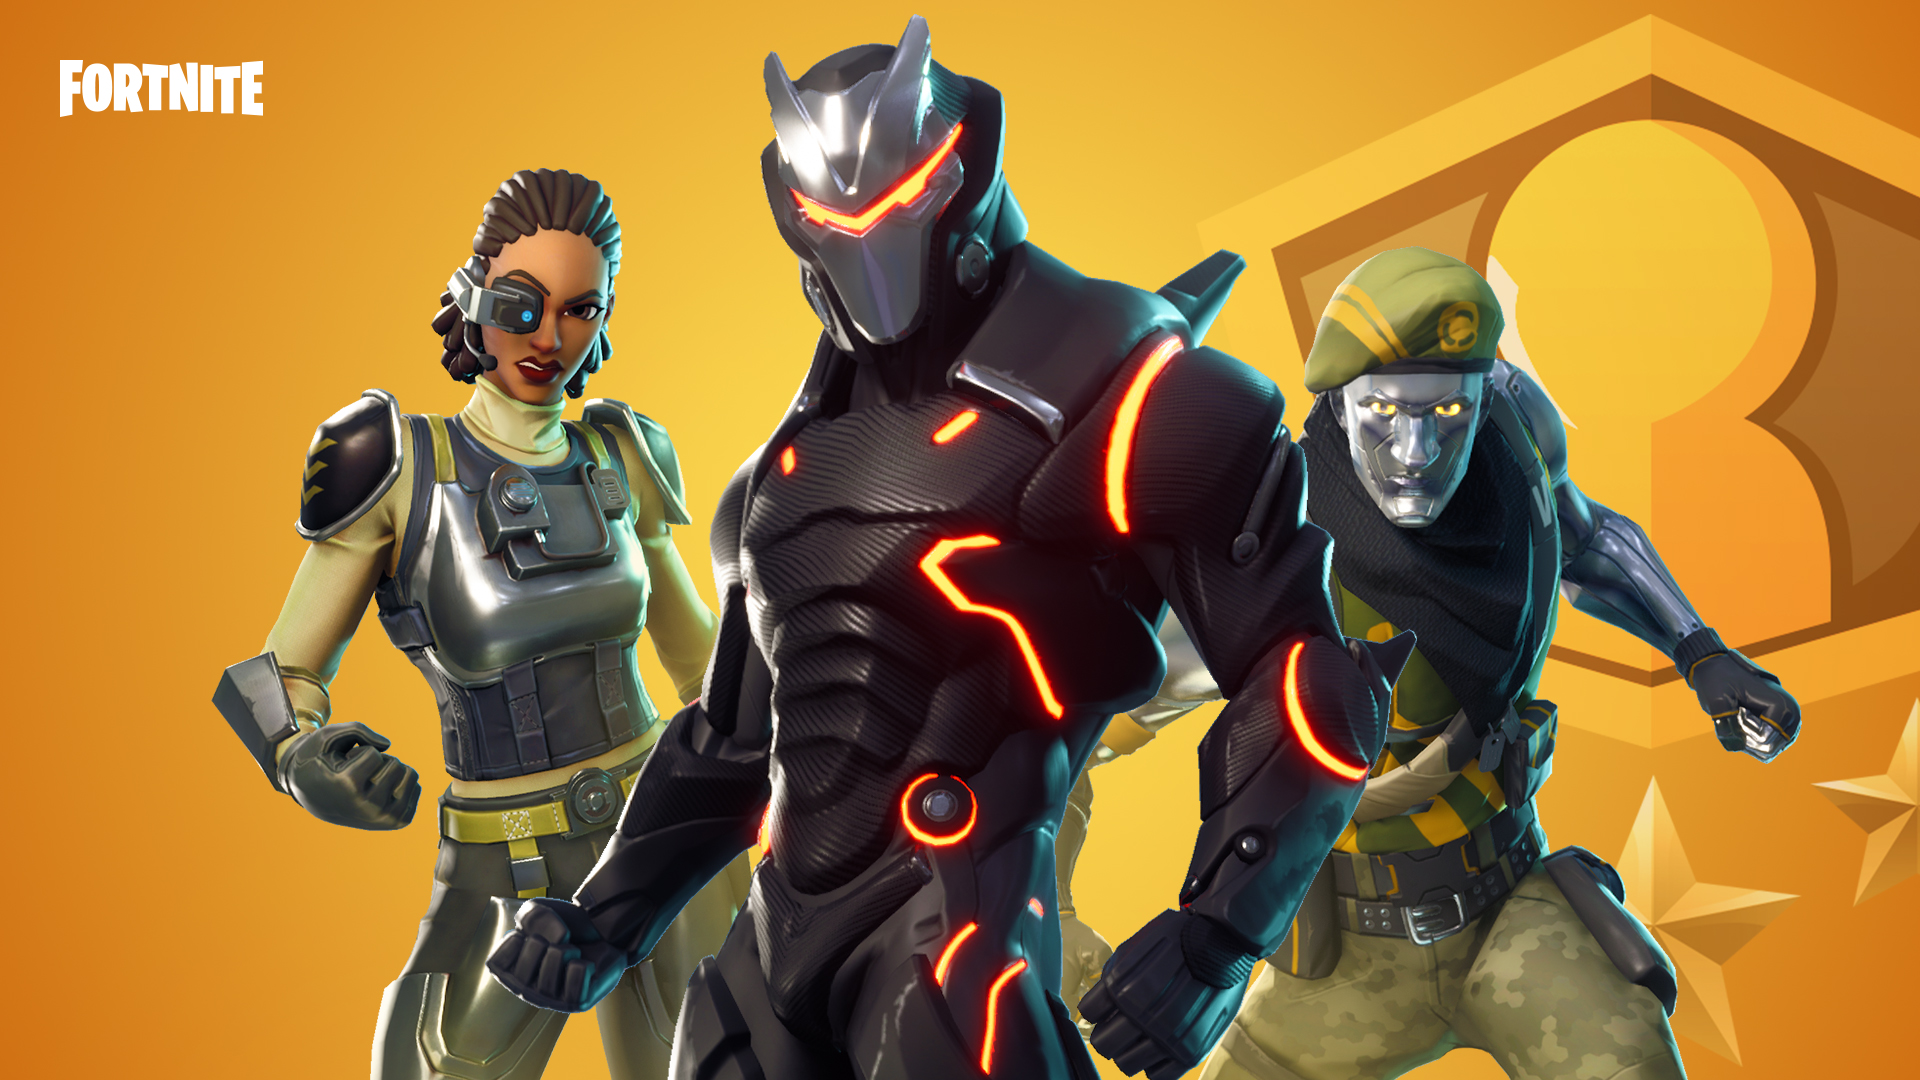 Fortnite Introduces Competitive Solo Showdown